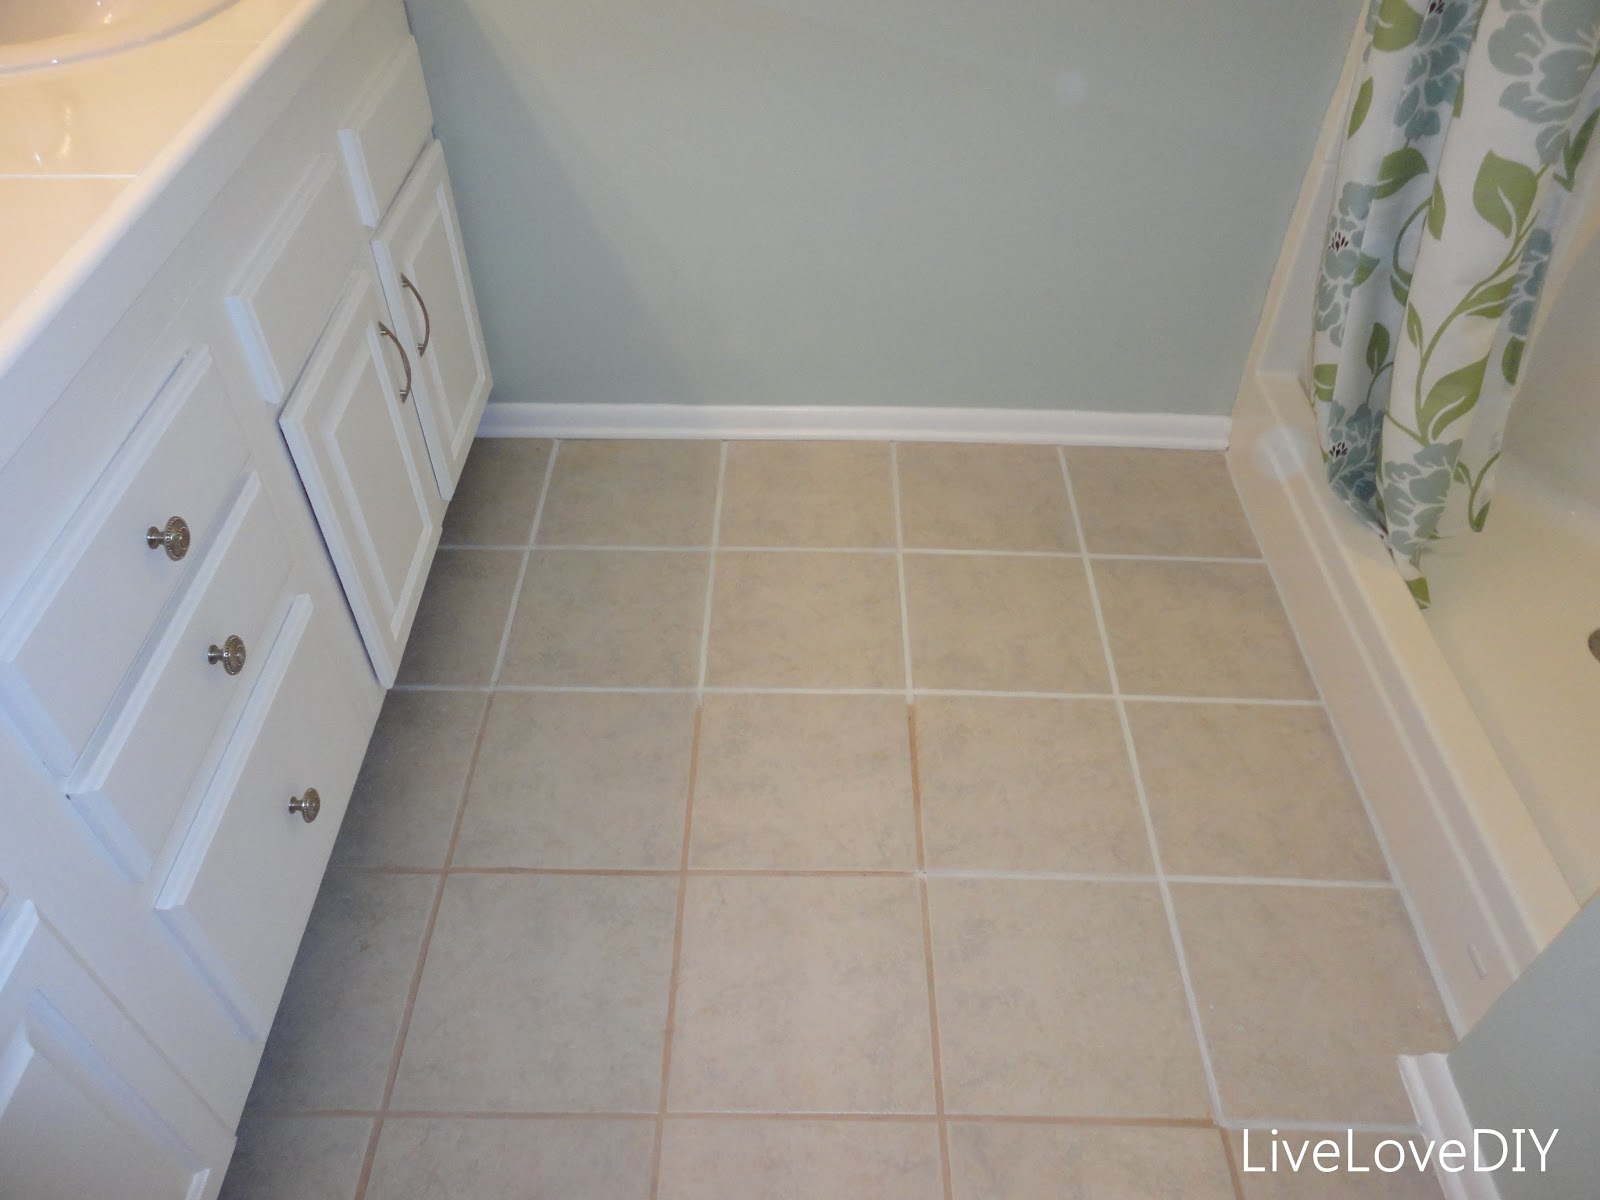 LiveLoveDIY How To Restore Dirty Tile Grout - How to clean bathroom floor tile grout